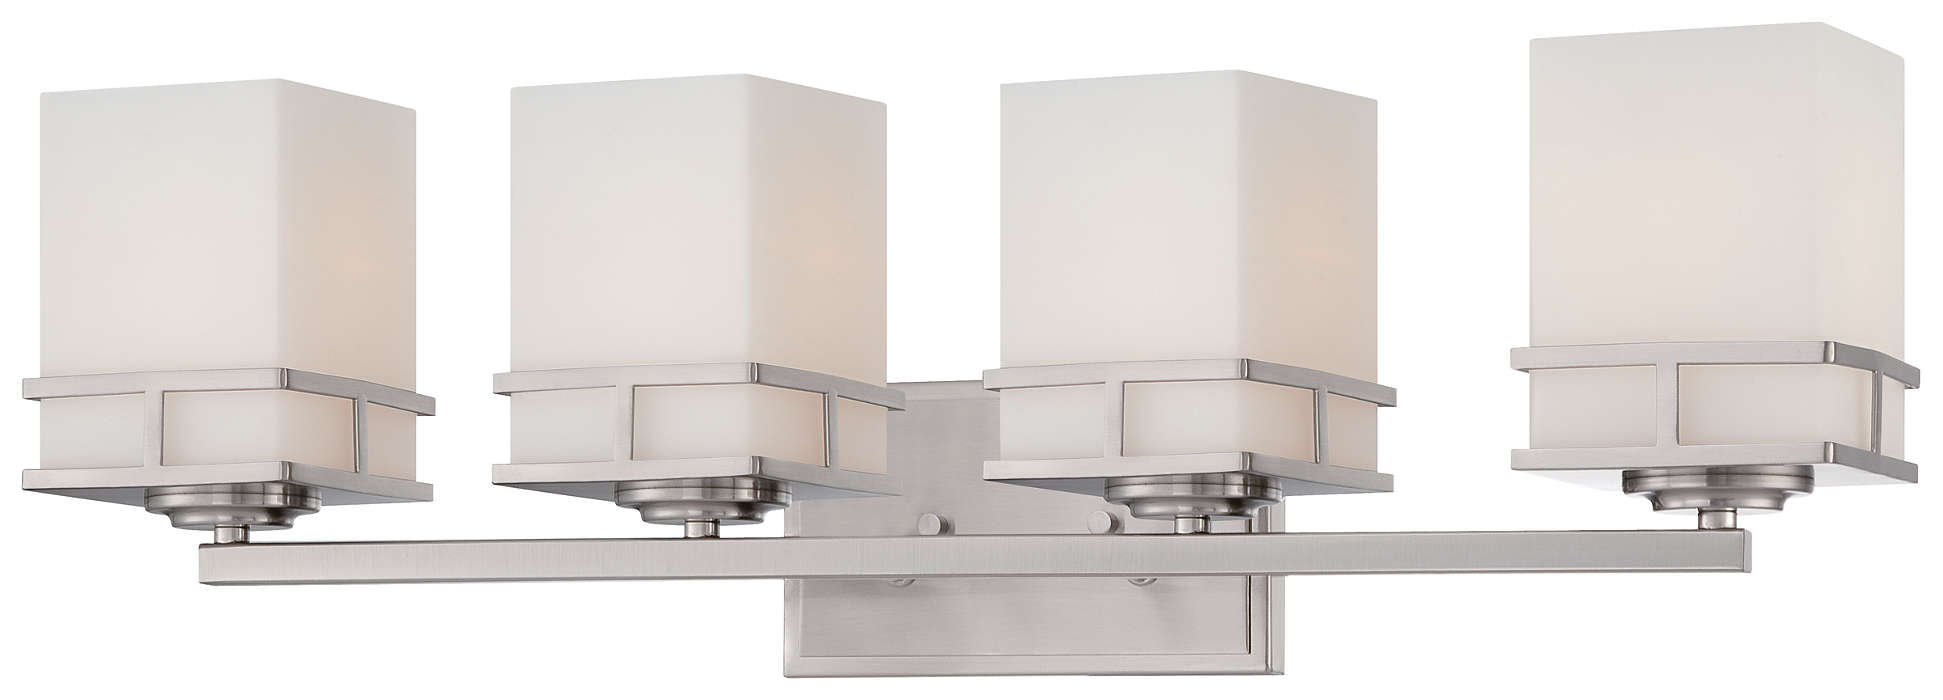 Morris 4-light Bath in Satin Nickel finish